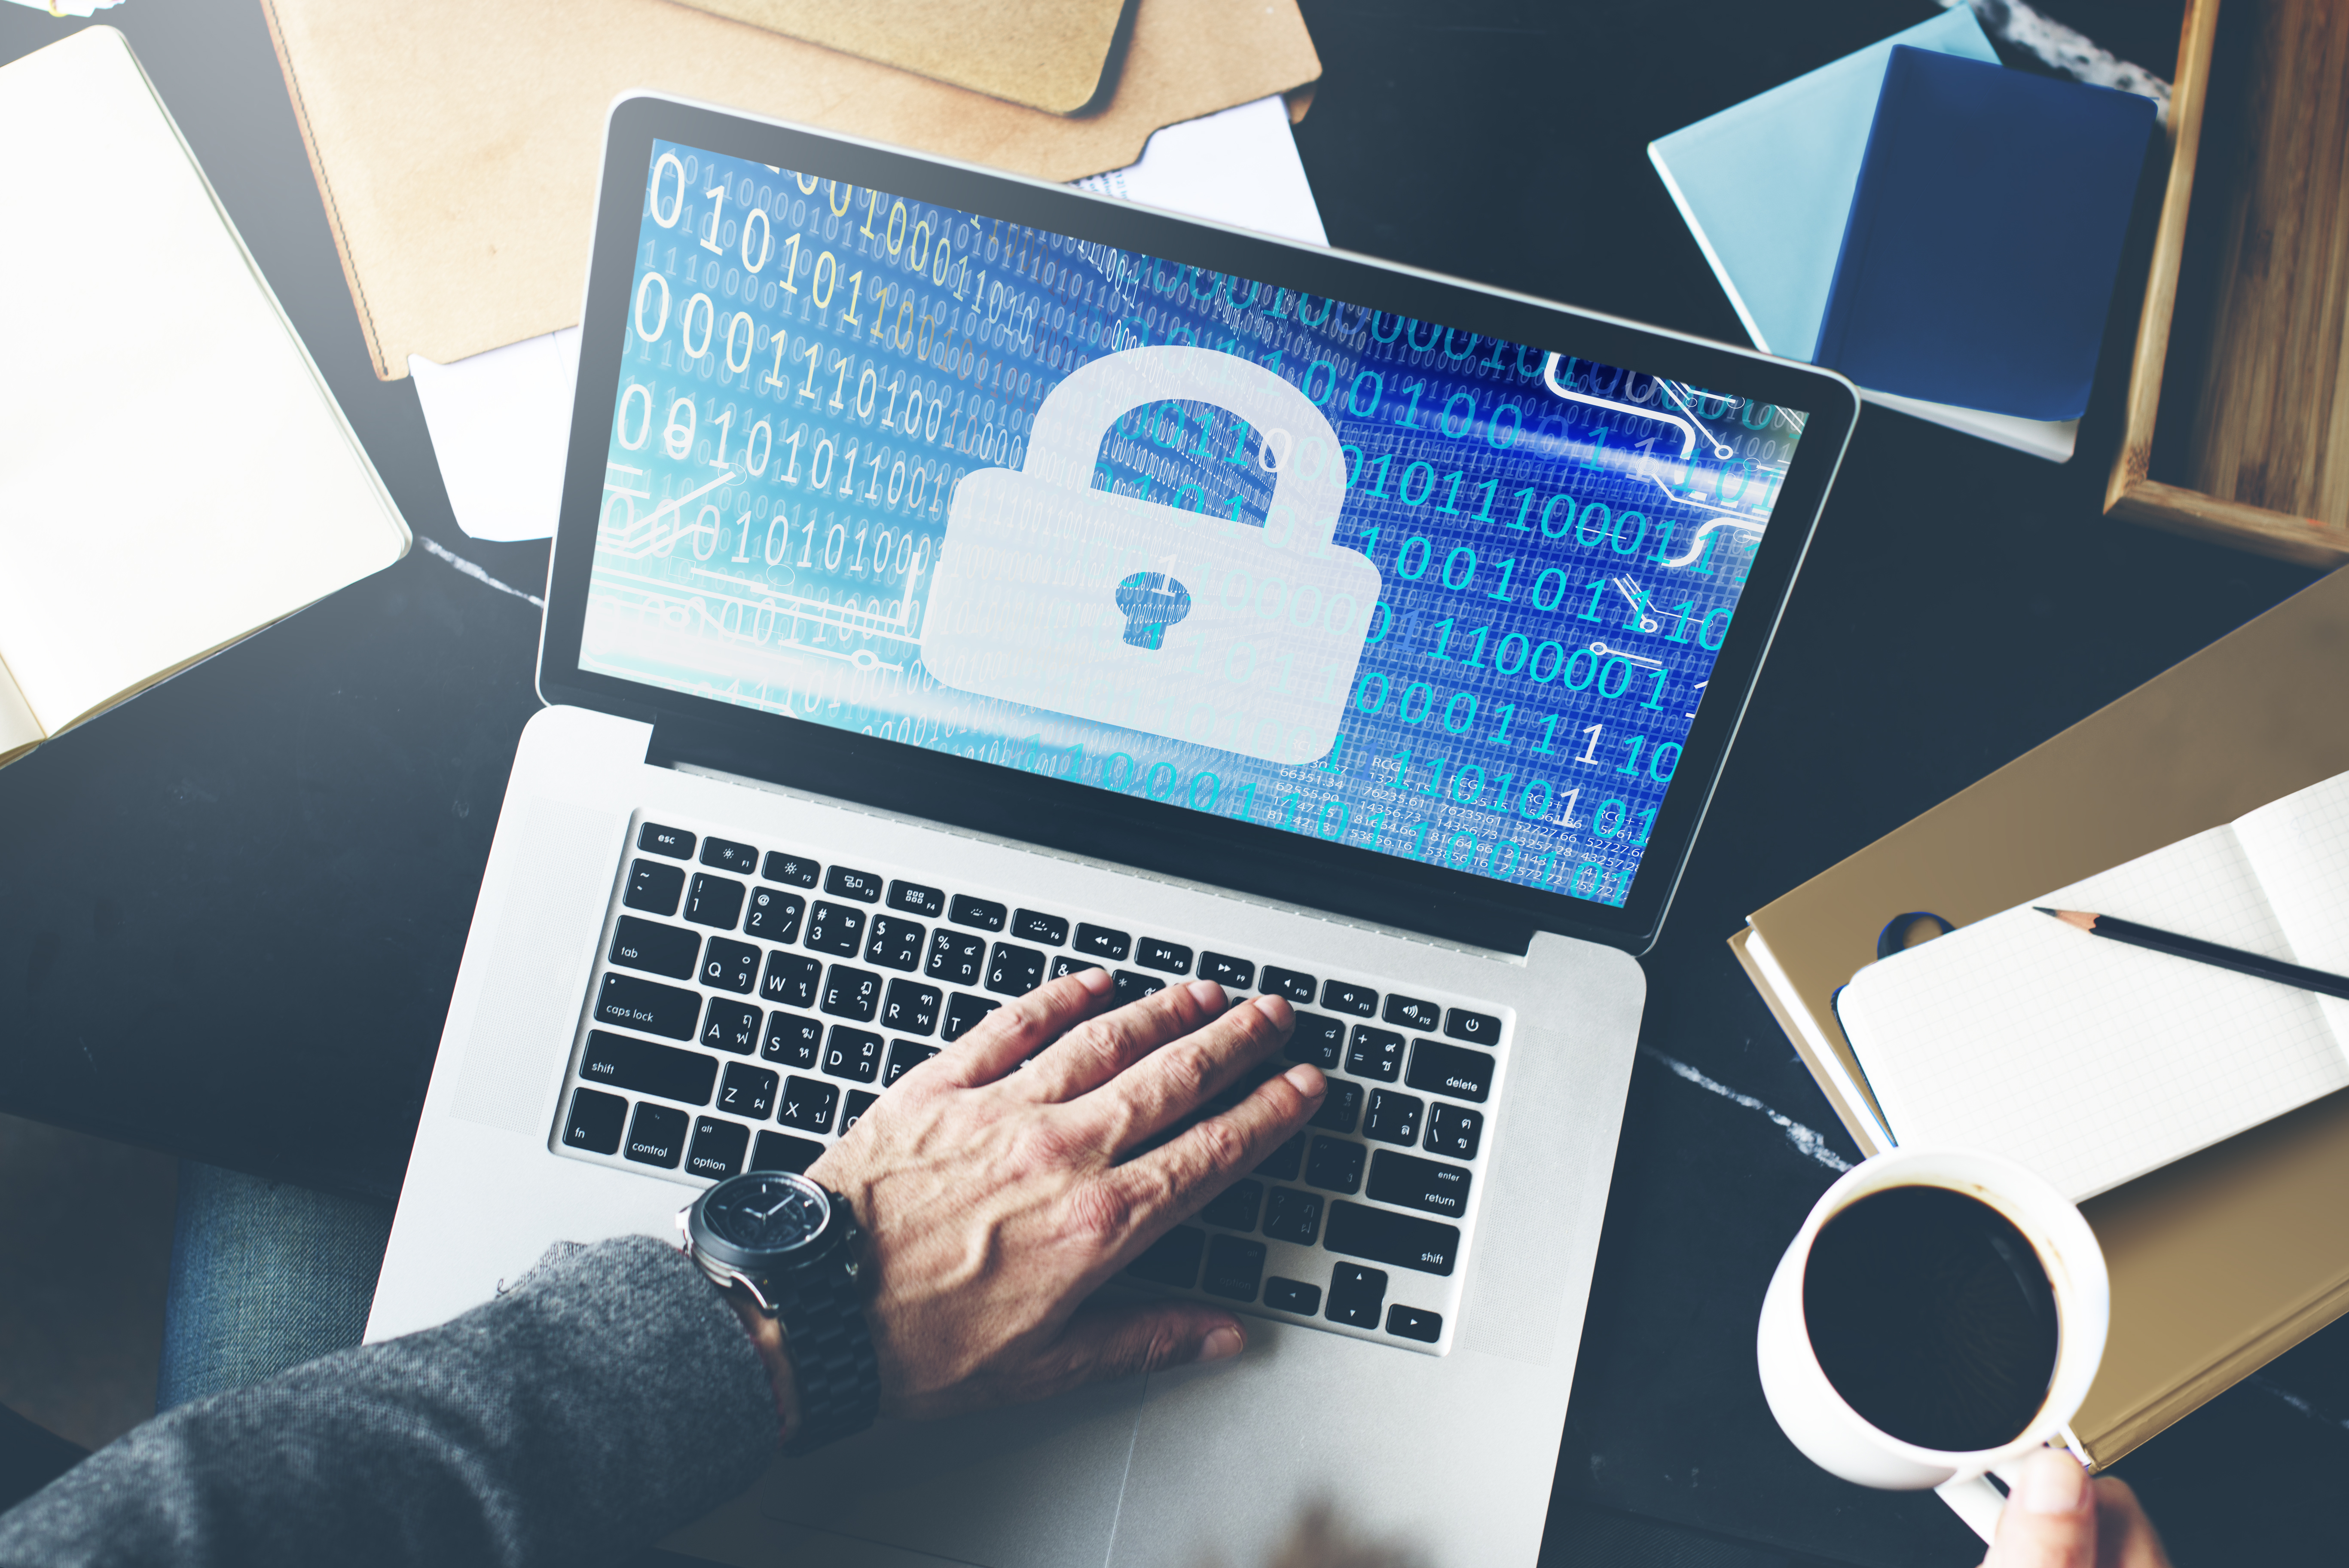 Security of their data is another concern for customers